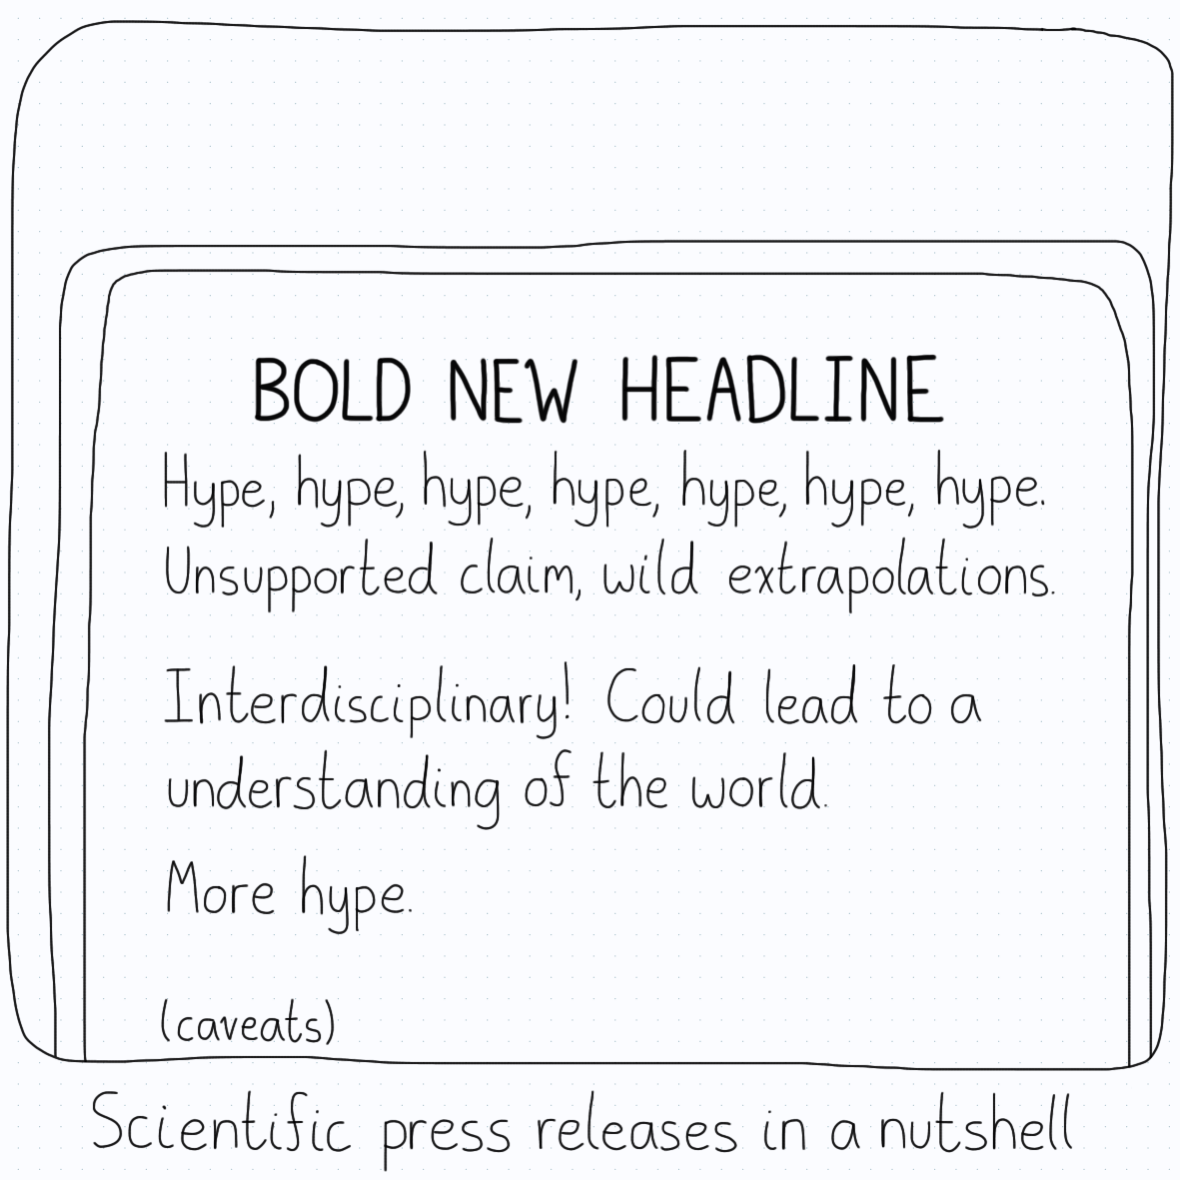 A bold new headline with a lot of big claims about some new science.